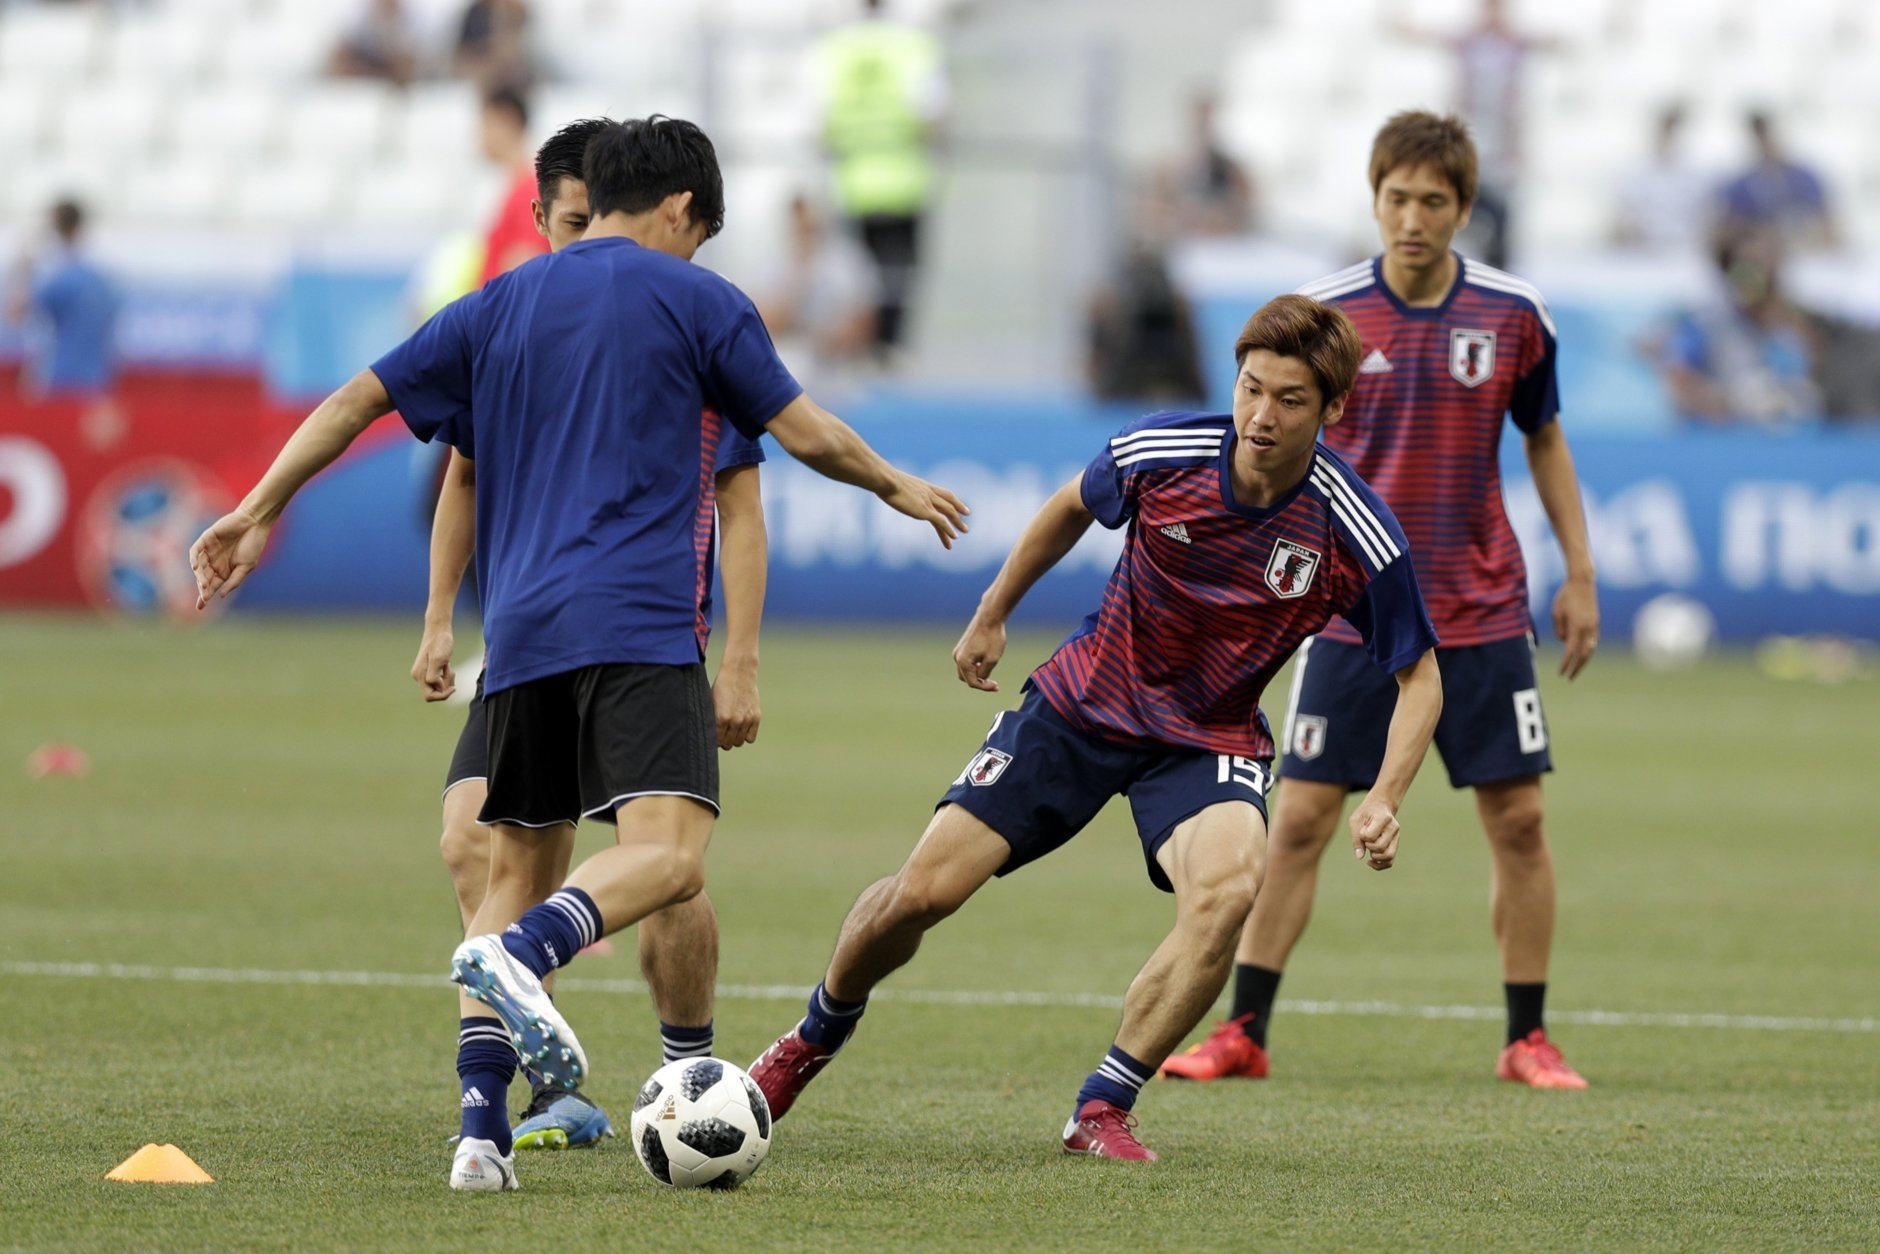 Japanese players warm up ahead of the group H match between Japan and Poland at the 2018 soccer World Cup at the Volgograd Arena in Volgograd, Russia, Thursday, June 28, 2018. (AP Photo/Andrew Medichini)